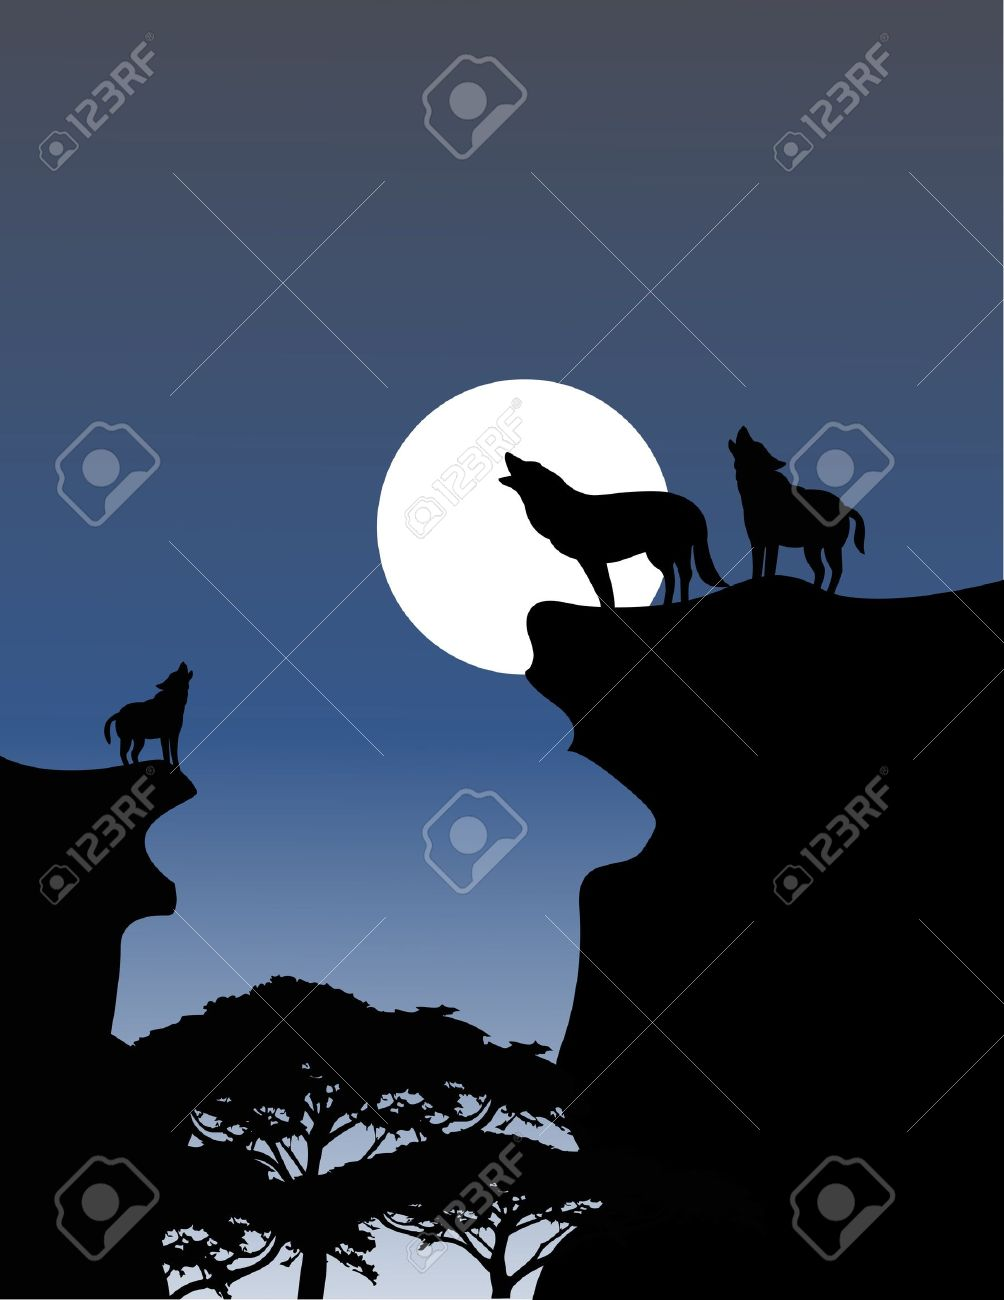 Wolf On Mountain Silhouette.